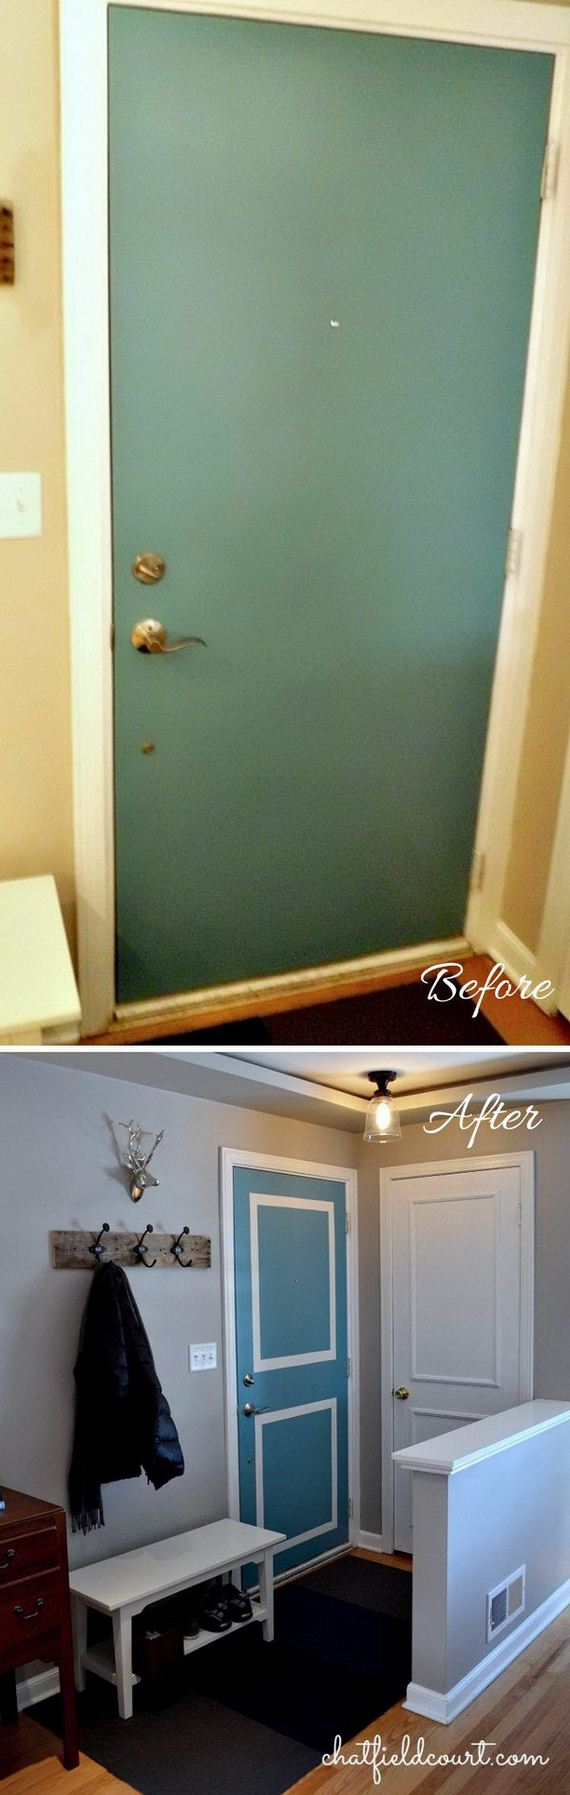 26-amazing-entryway-makeover